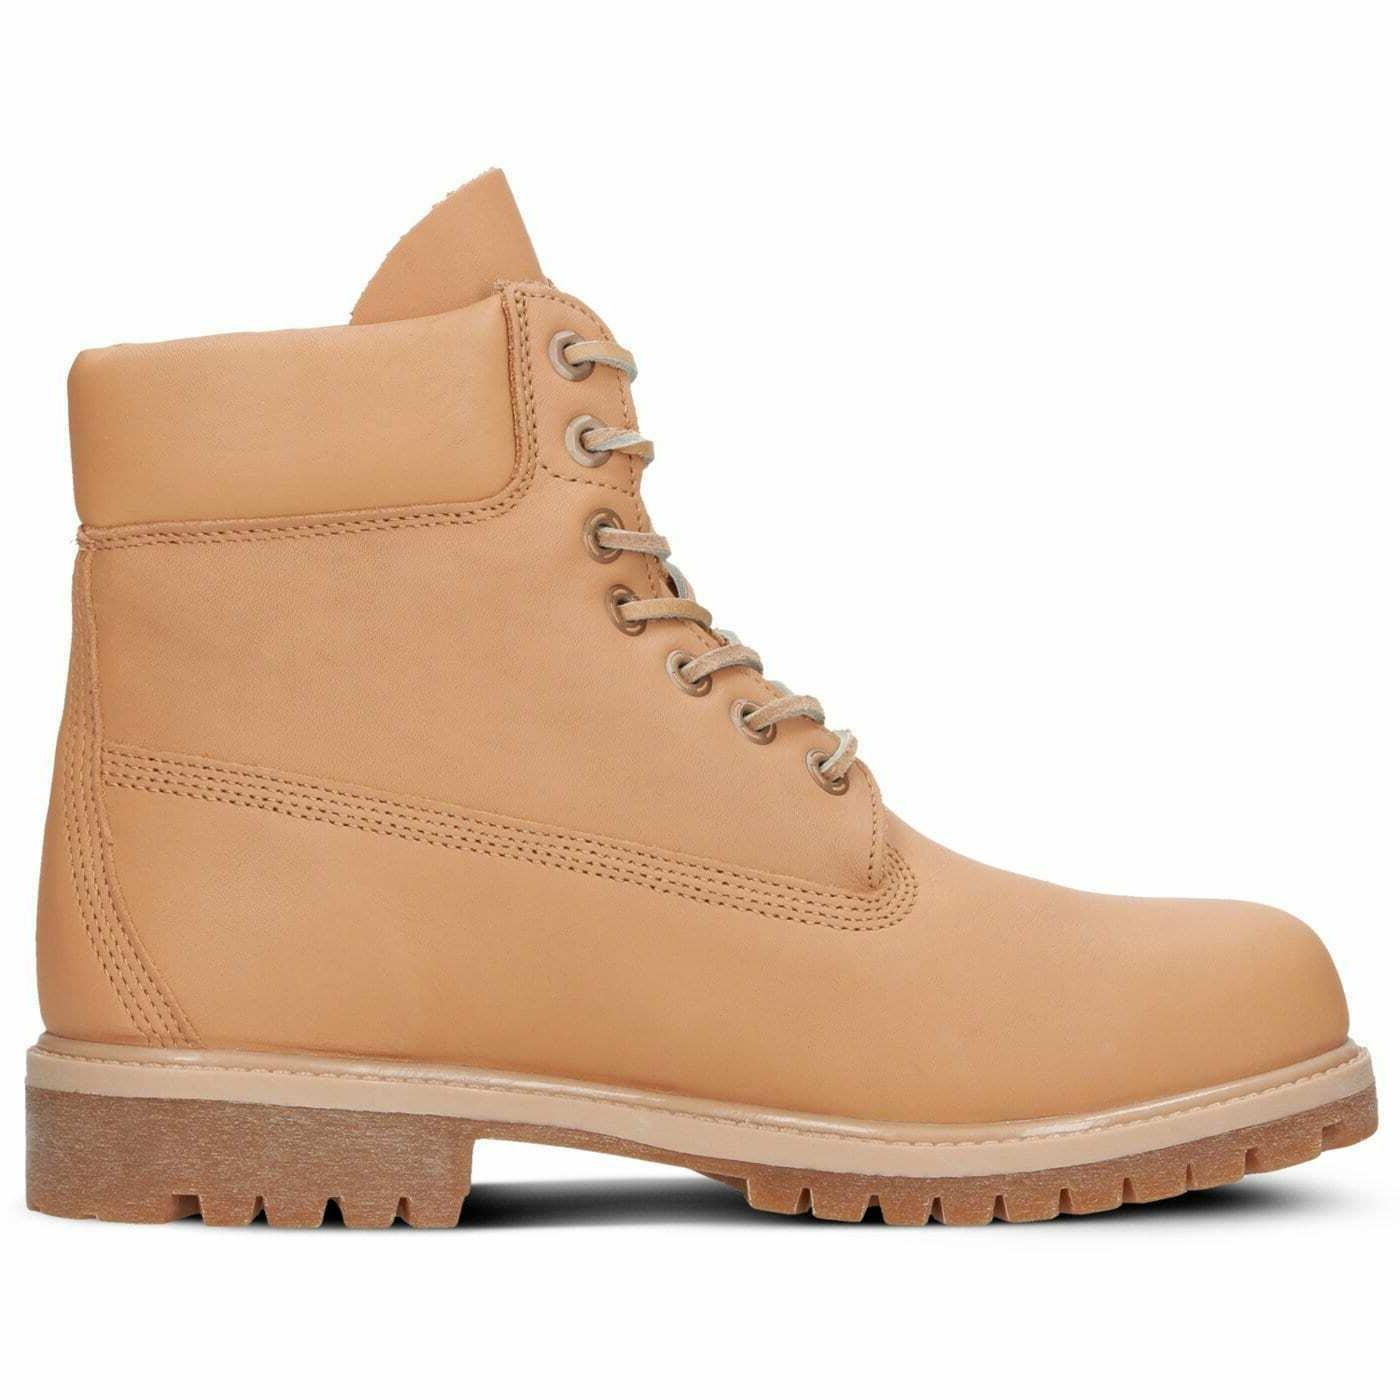 Timberland Inch Release Premium Leather Natural Boots